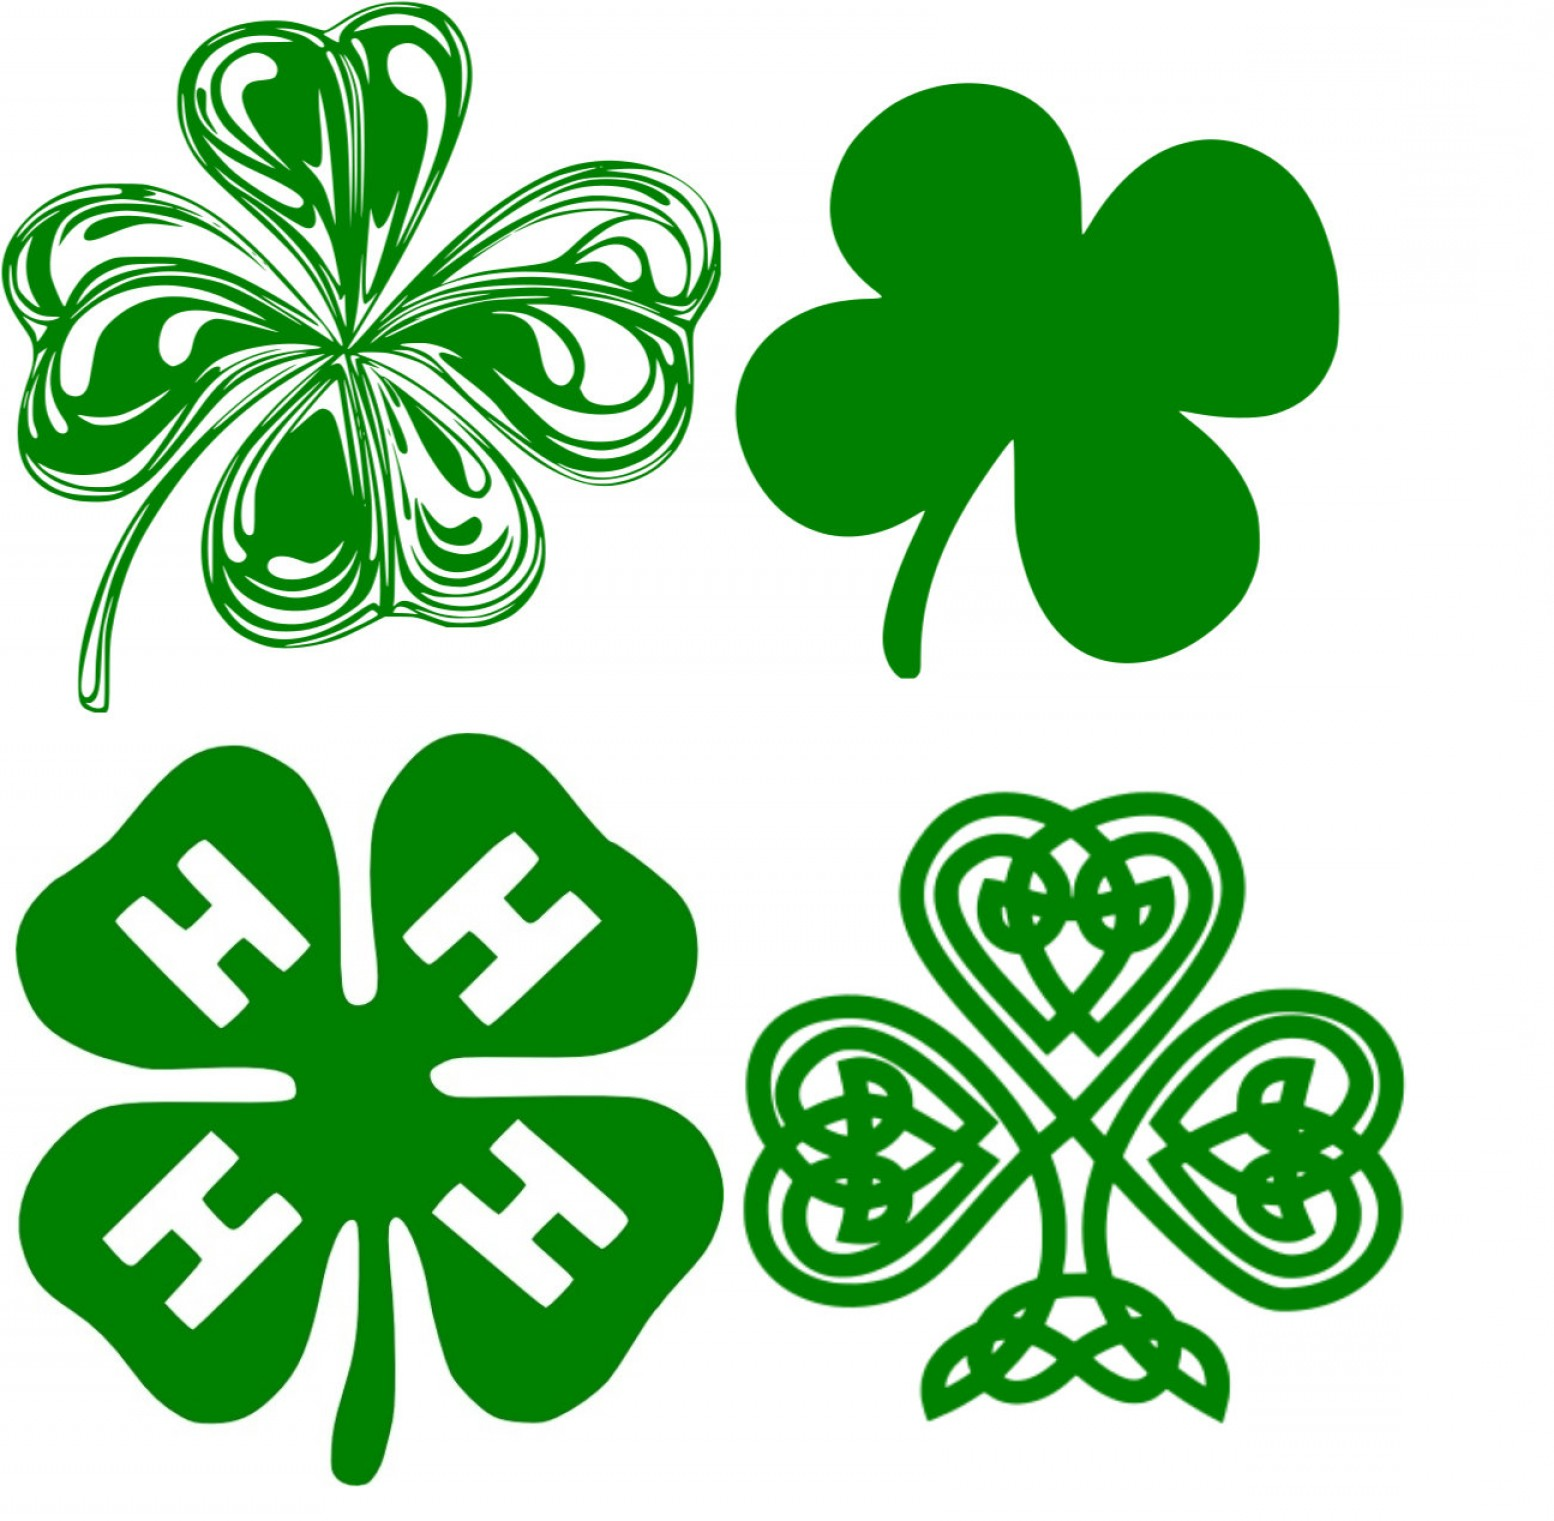 Neon Green Softball Stitches Vector: Shamrock Set Of St Patricks Day H